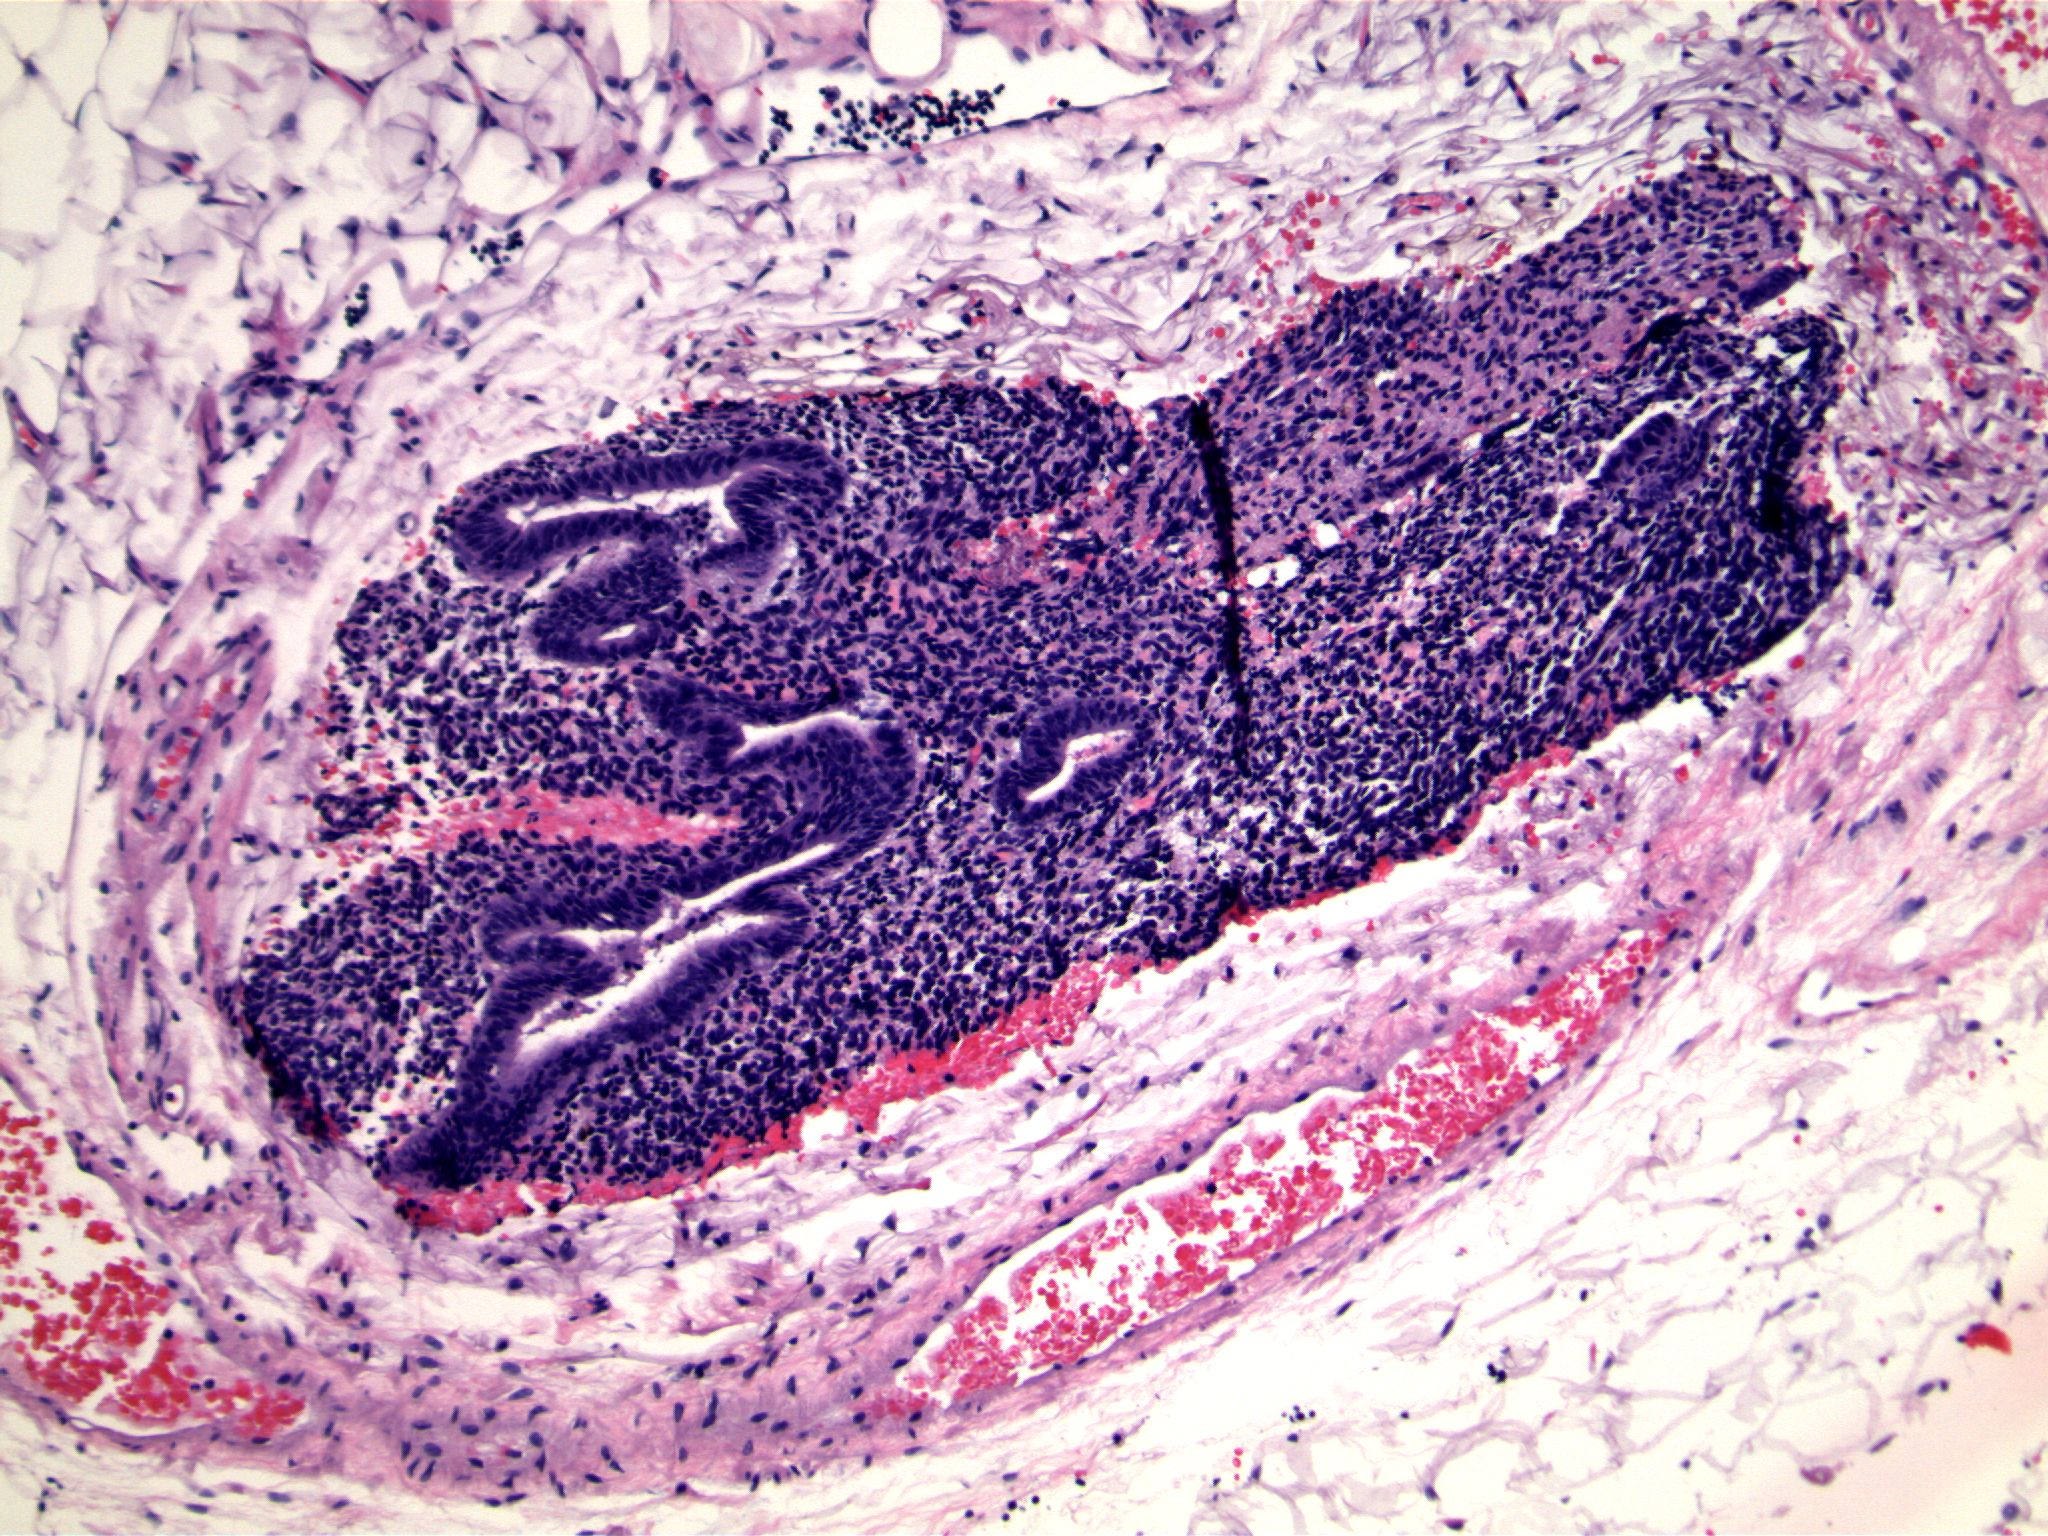 Image 6.   Bland columnar epithelium is associated with small round to oval blue cells.